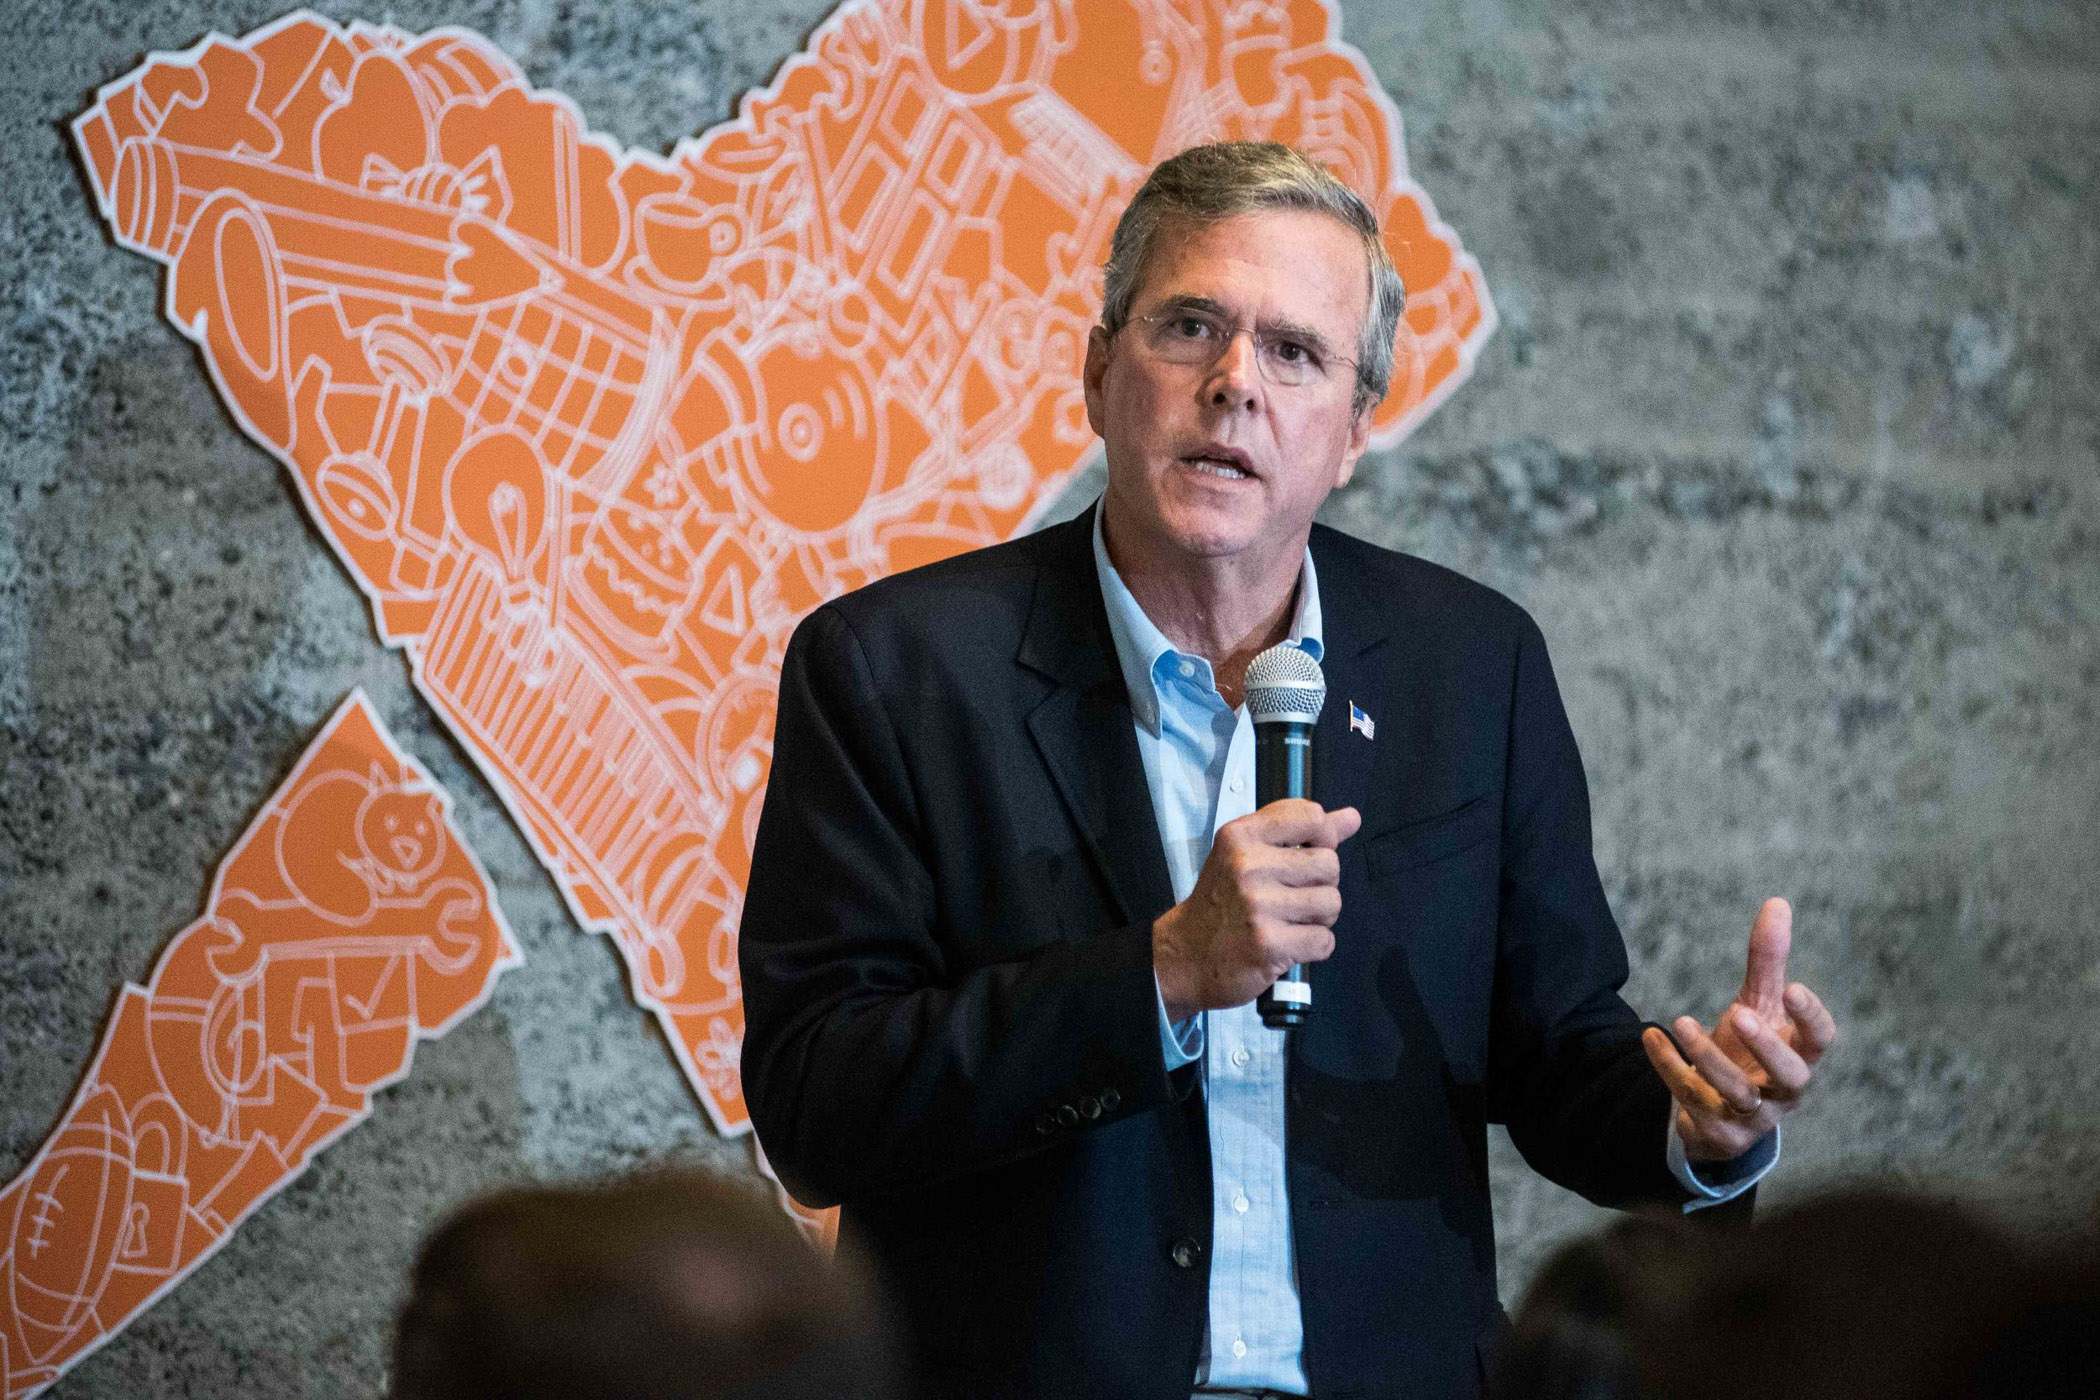 Republican presidential candidate and former Florida governor Jeb Bush speaks to workers at Thumbtack on Thursday, July 16, 2015 in San Francisco. (Michael Ares/Special to the S.F. Examiner)